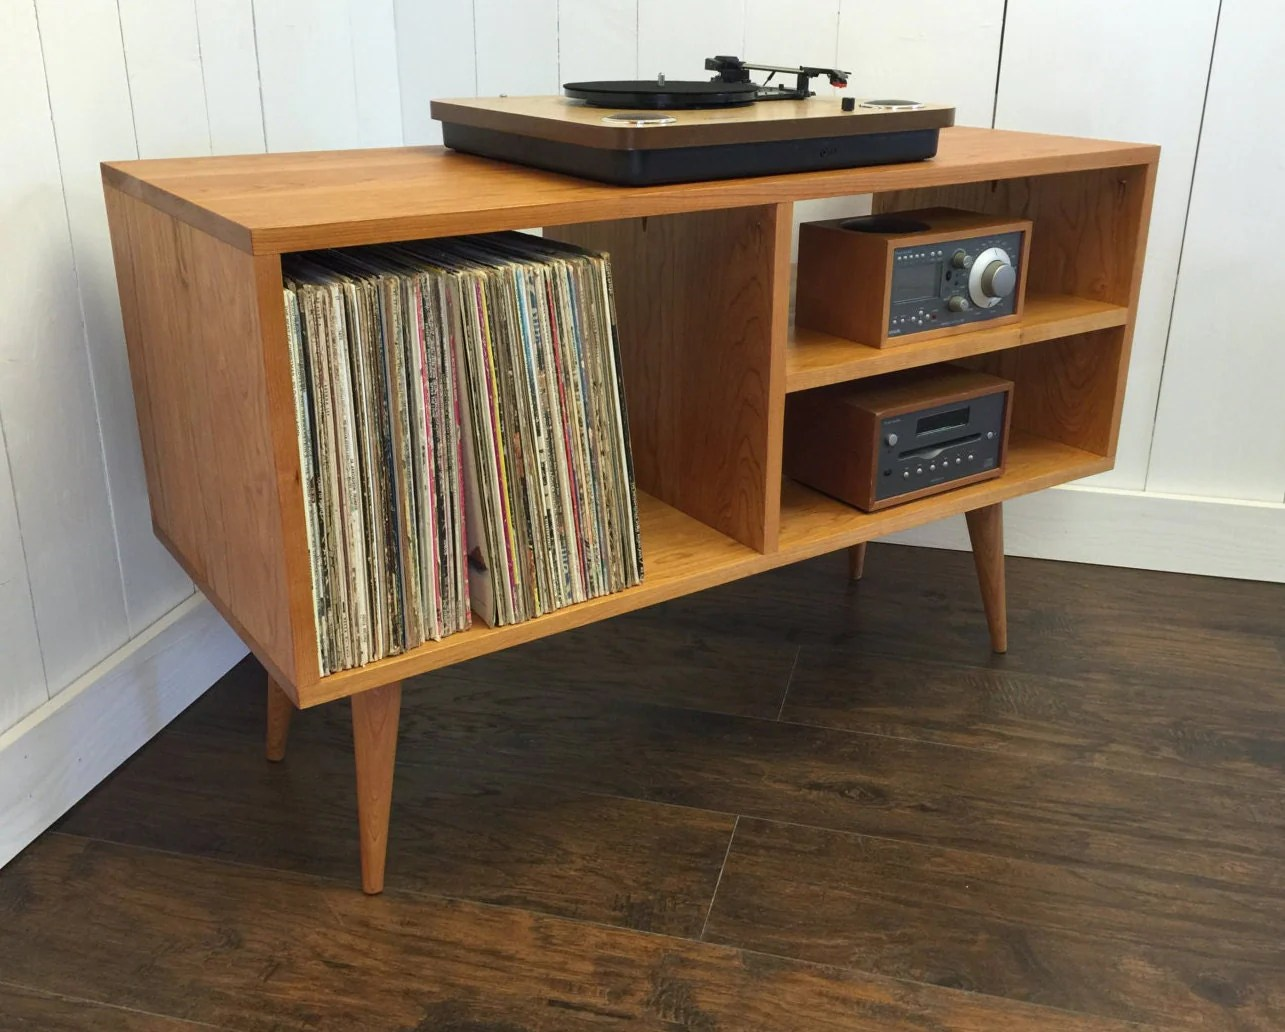 Platenspeler Meubel New Mid Century Modern Record Player Console Turntable